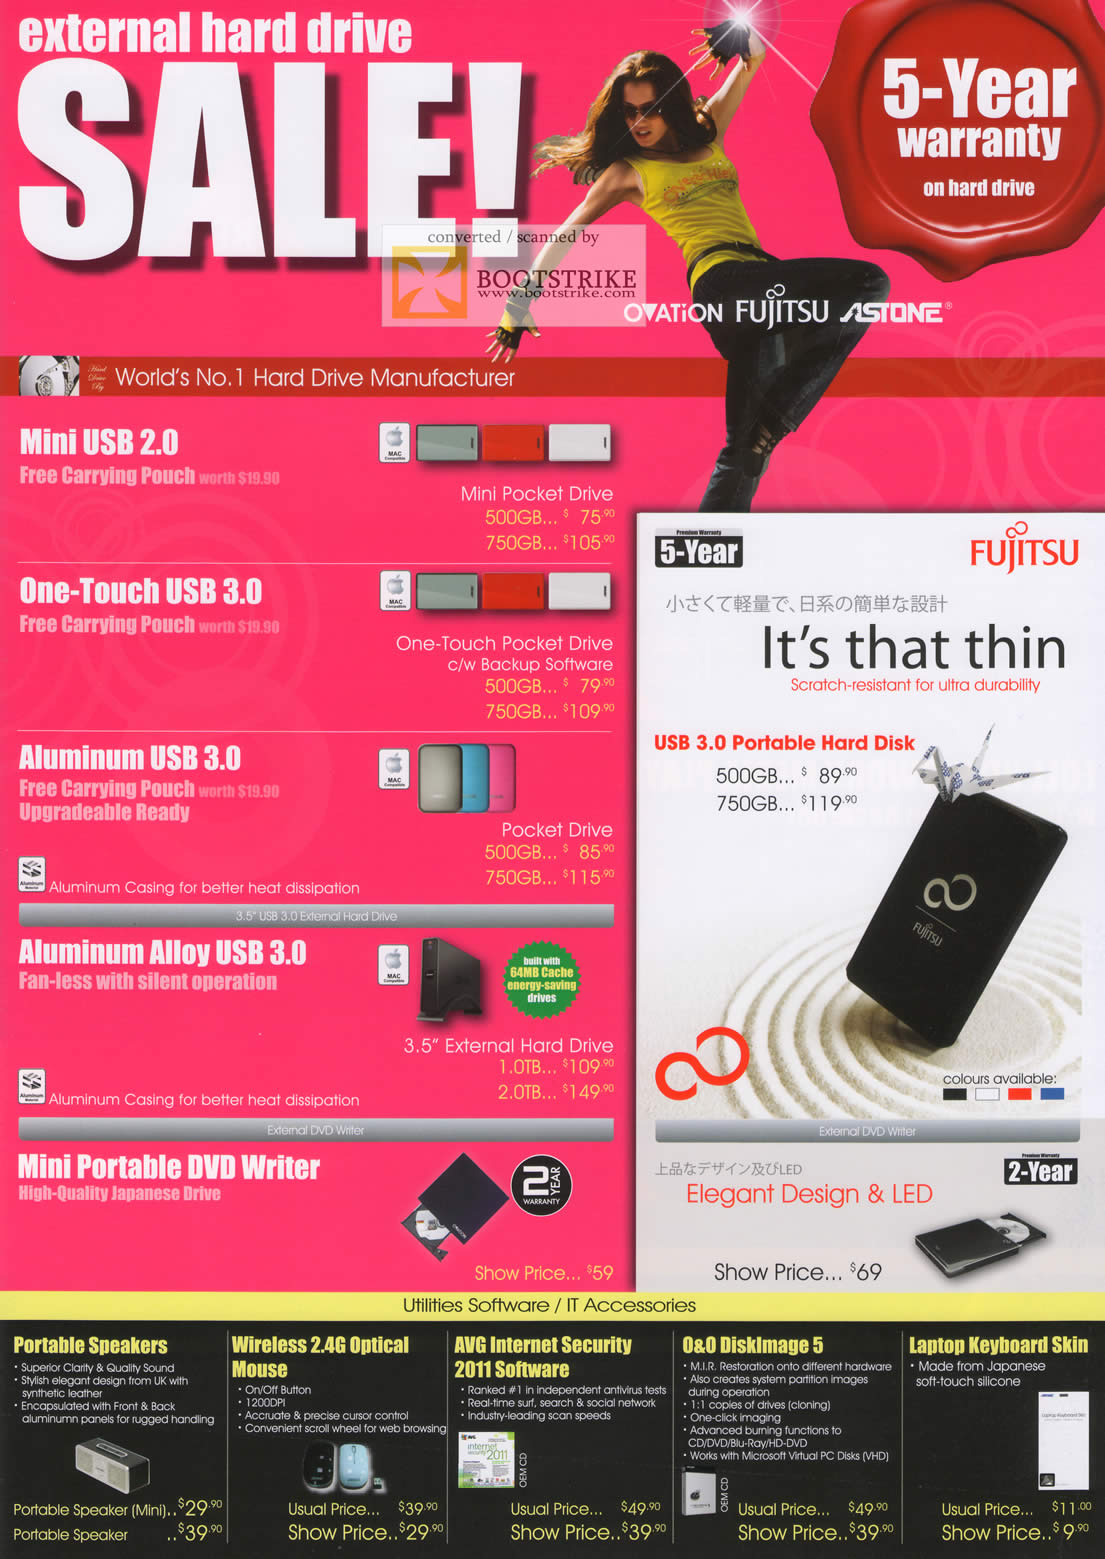 IT Show 2011 price list image brochure of Achieva External Storage Drive USB Mini Pocket One Touch Aluminum Alloy DVD Writer Fujitsu Speakers Mouse AVG DiskImage